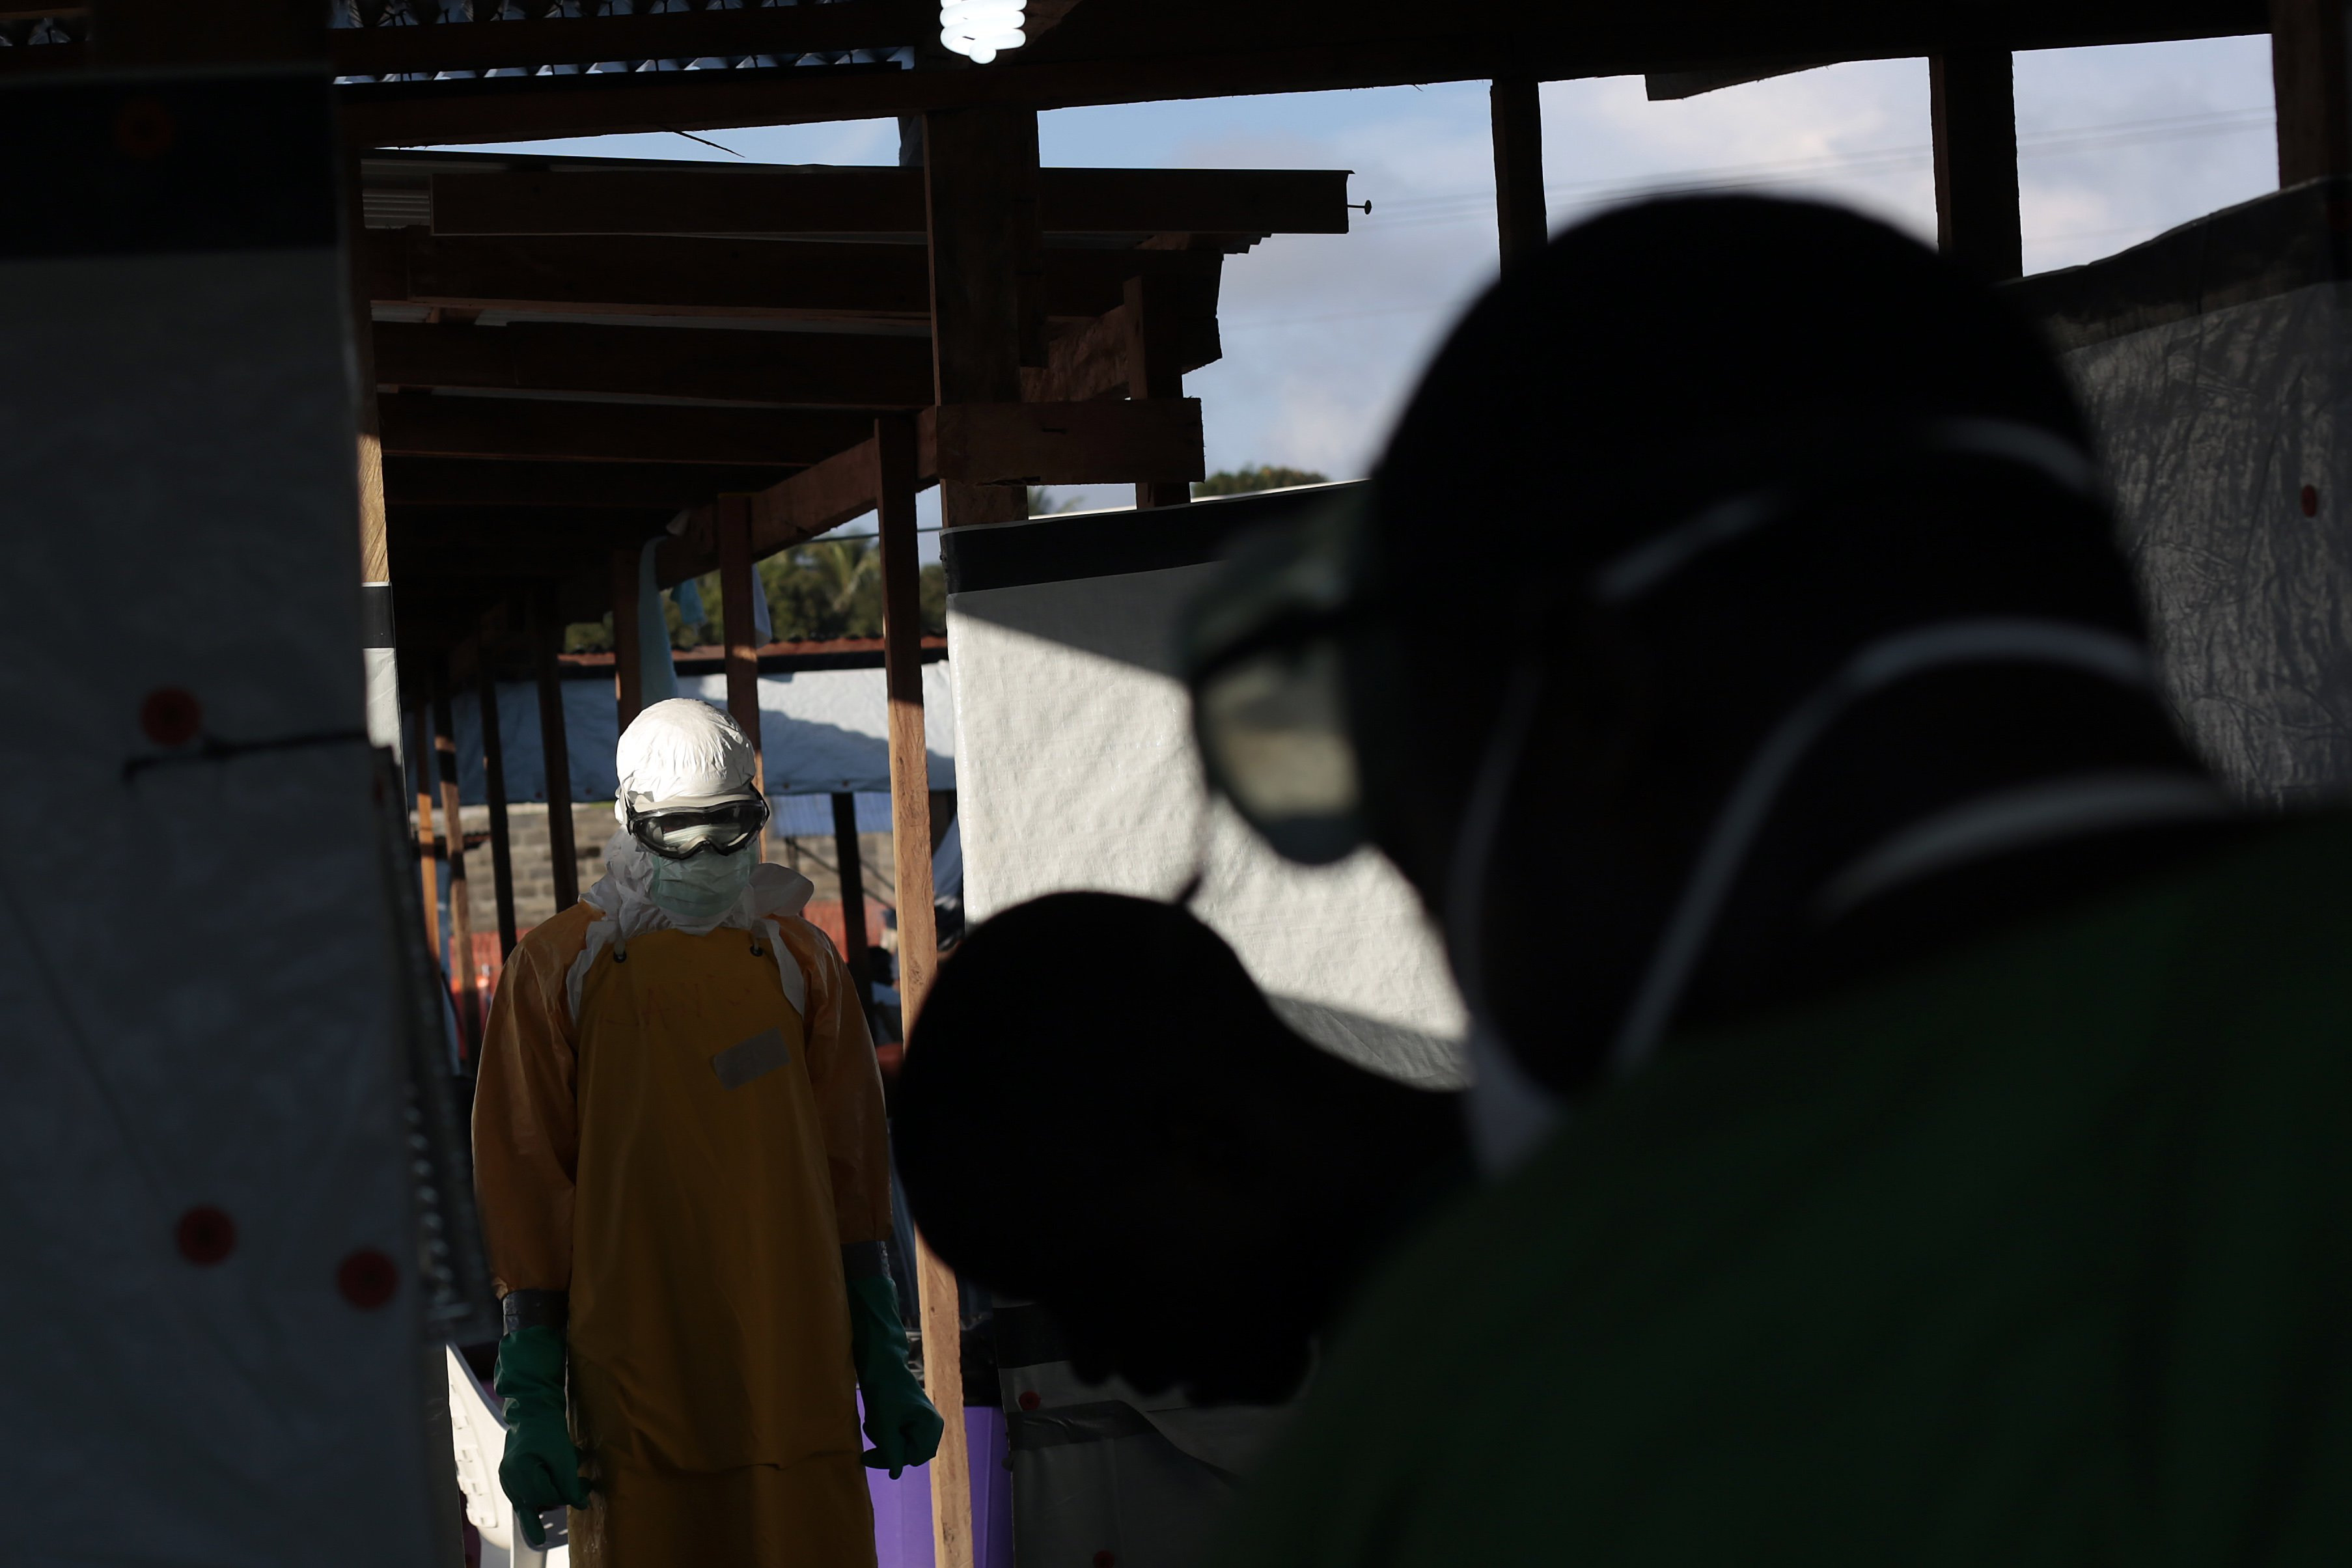 A Medecins Sans Frontieres (MSF) worker is sprayed and disinfected as he leaves a high risk zone of MSF's  Ebola isolation and treatment center in Monrovia, Liberia, Sept. 29, 2014.